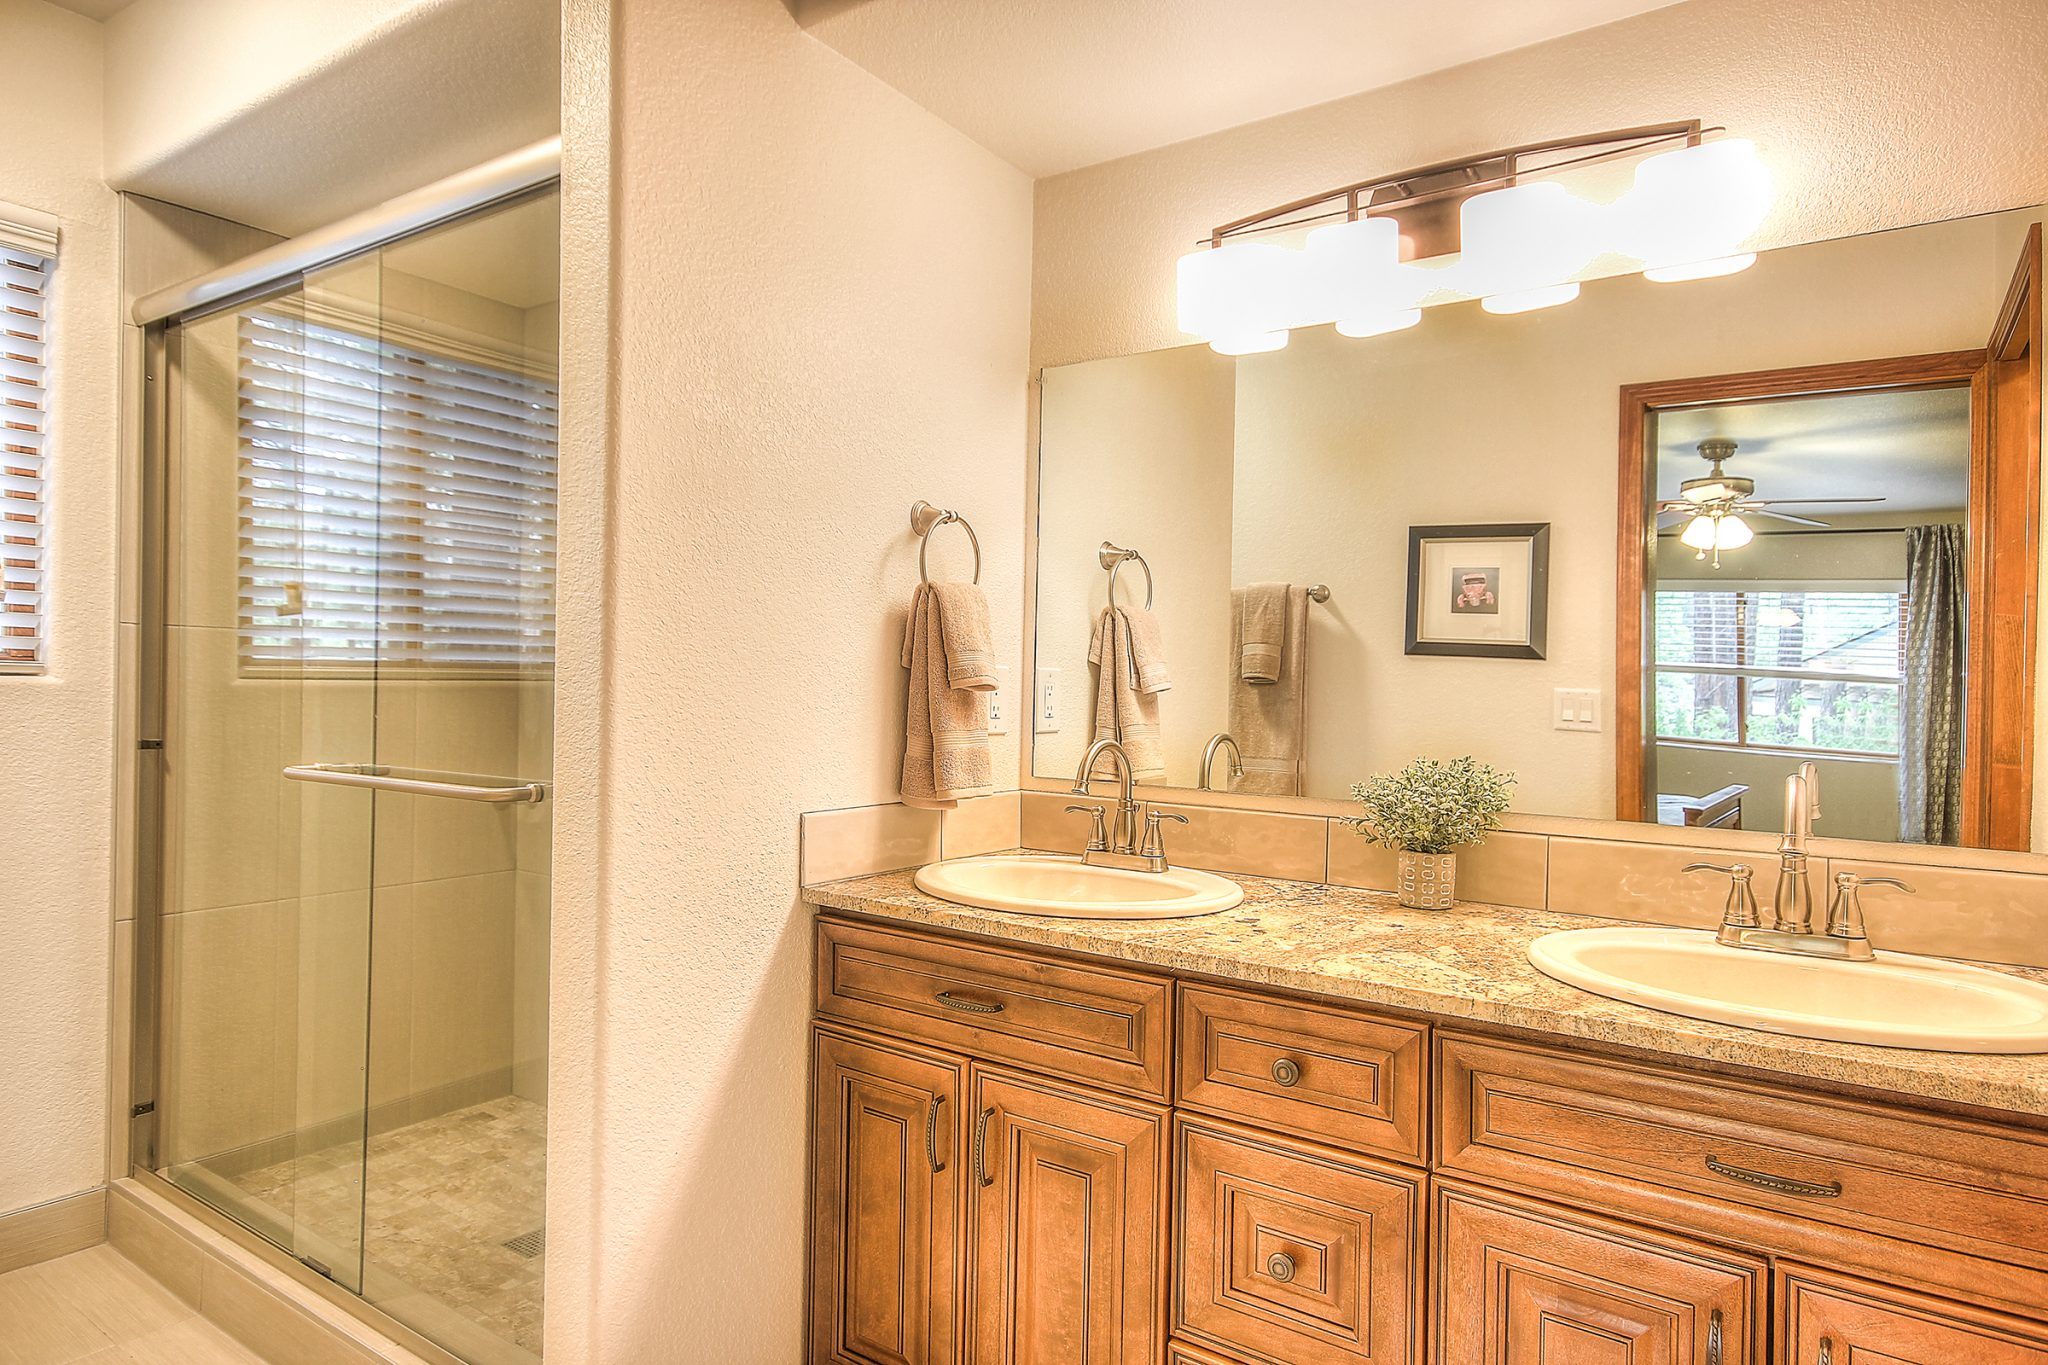 Interior shot of a newly remodeled bathroom with wooden cabinets, granite countertops, and a freshly tiled shower